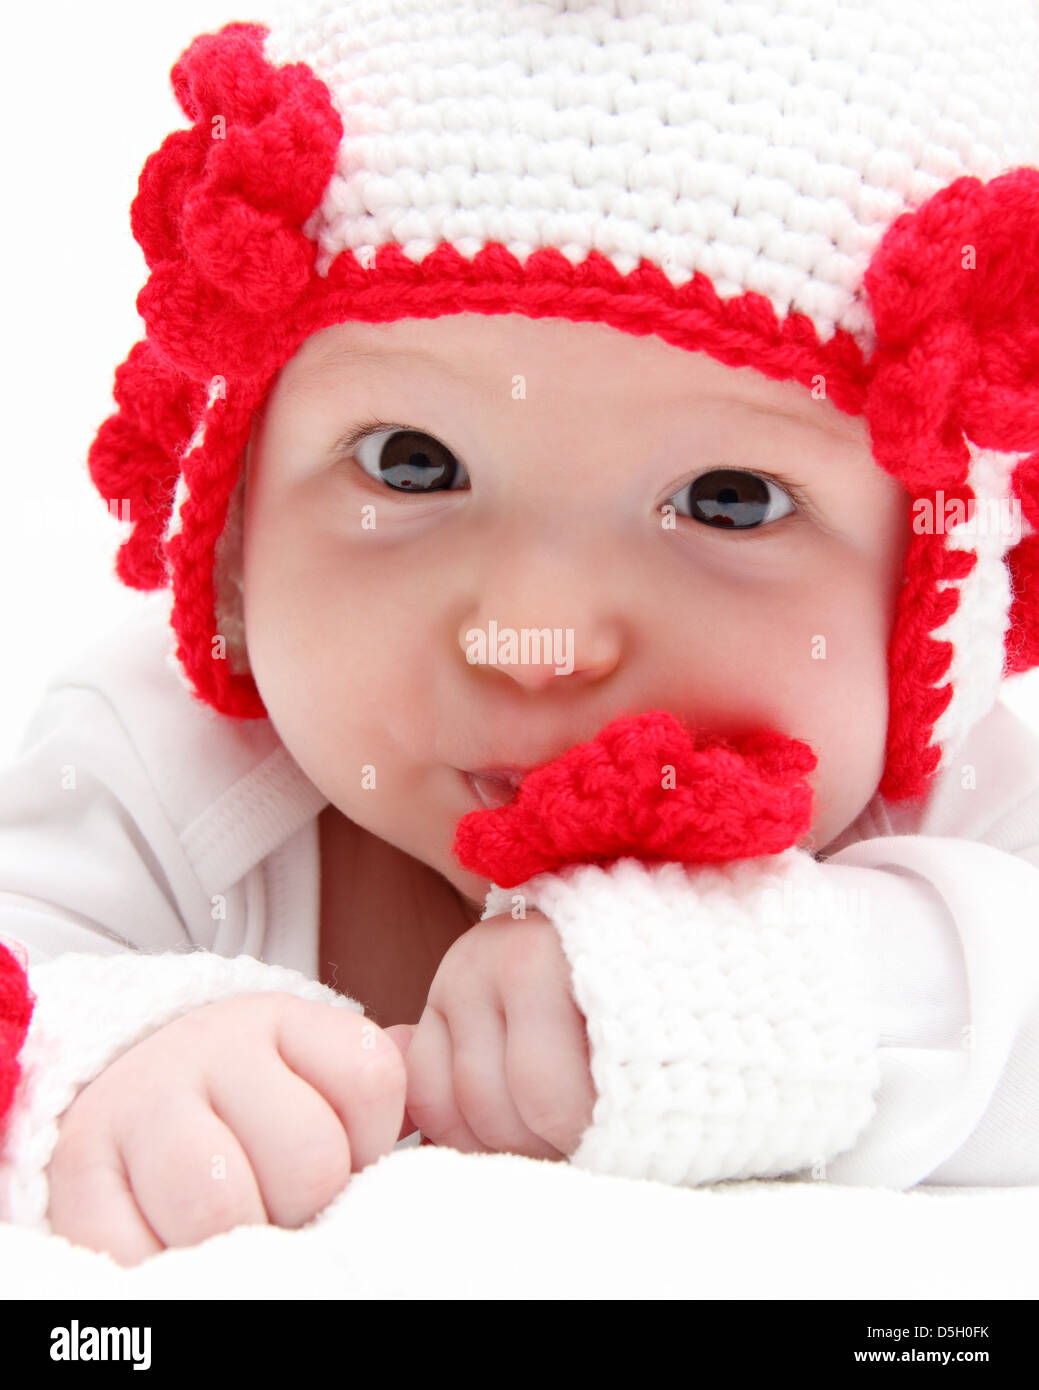 baby with knitted white hat baby on stomach - Stock Image